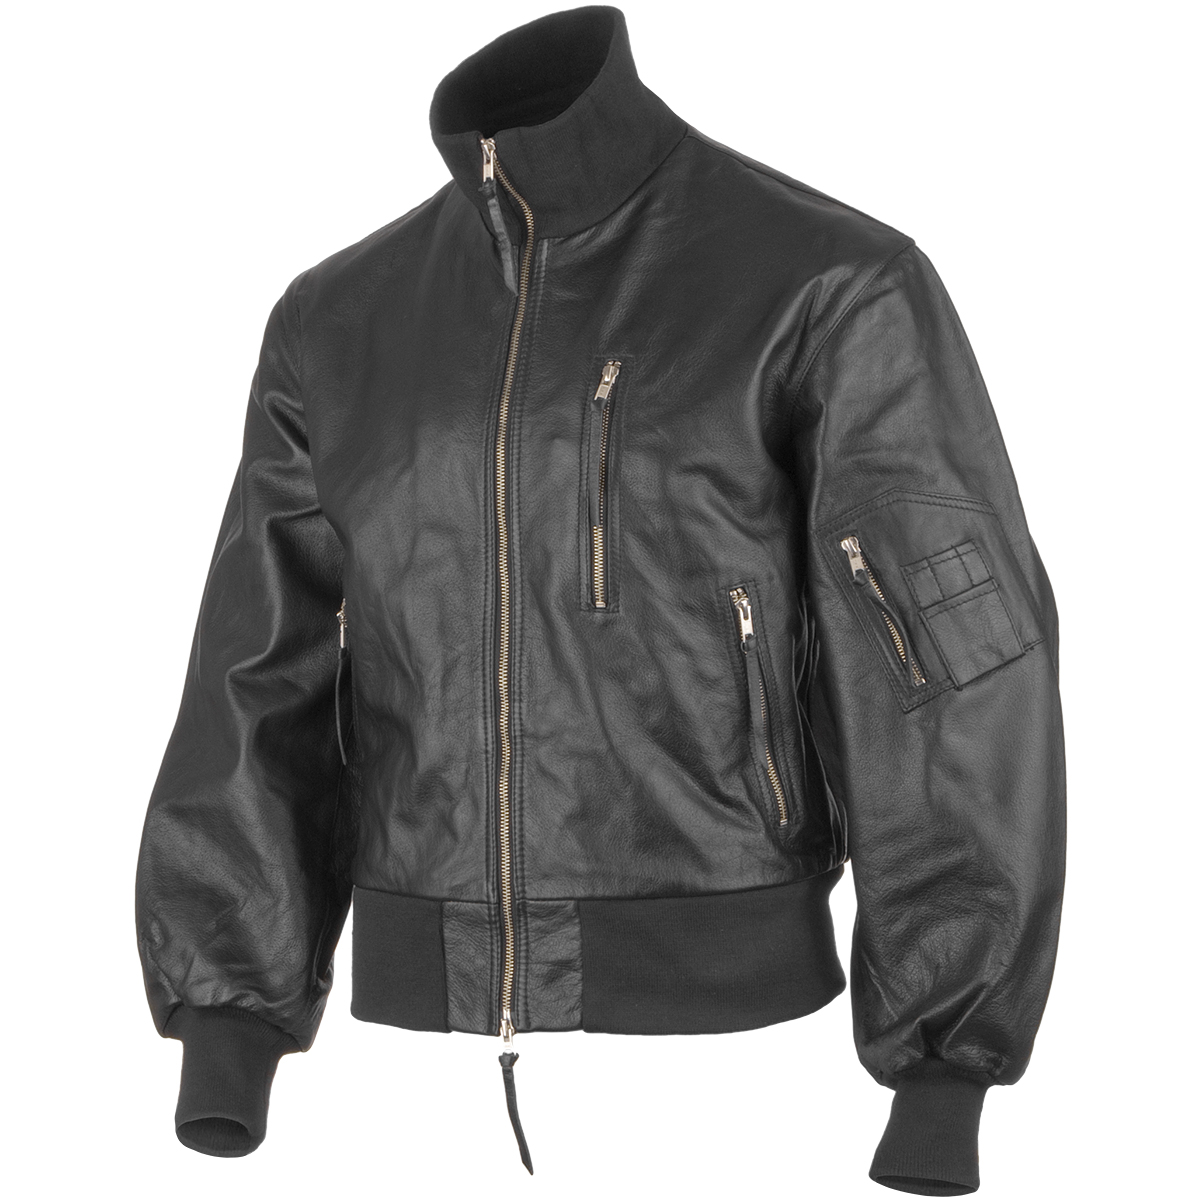 Mil-Tec German Army Leather Flight Jacket Black | Flight ...